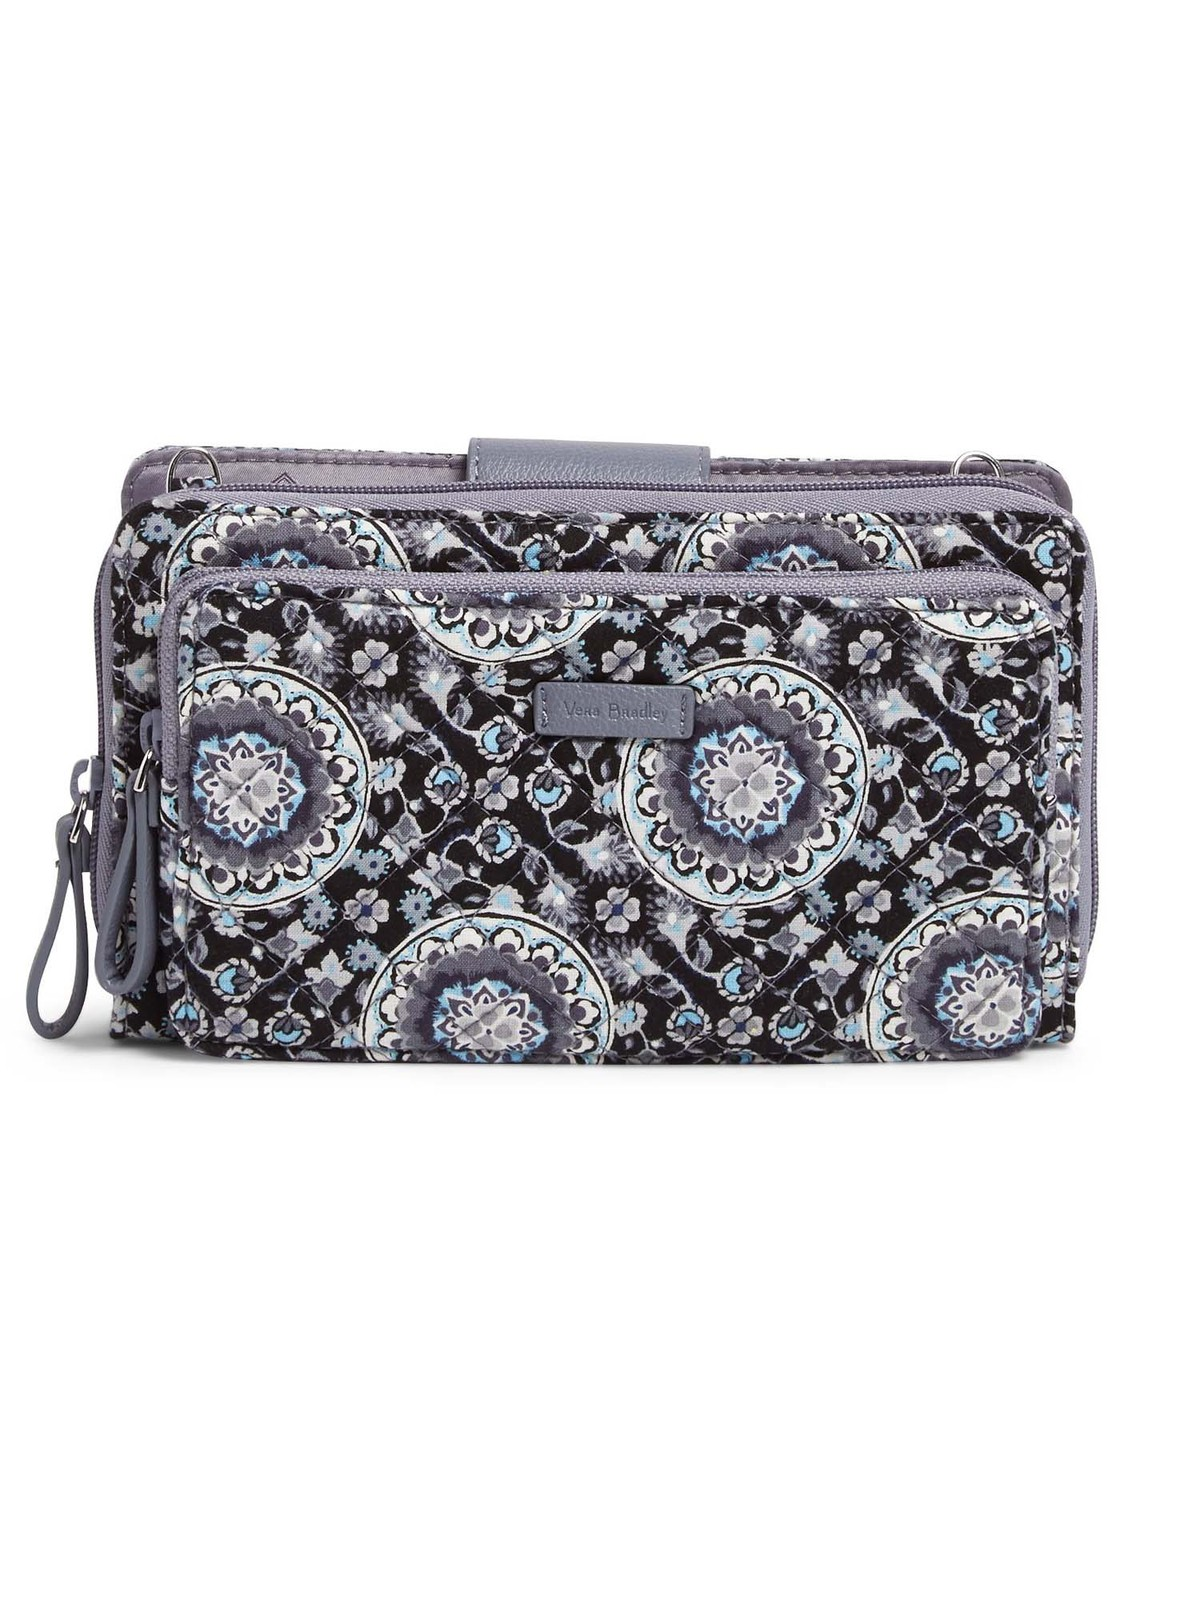 Vera Bradley Iconic Deluxe All Together Crossbody Bag, Charcoal Medallion